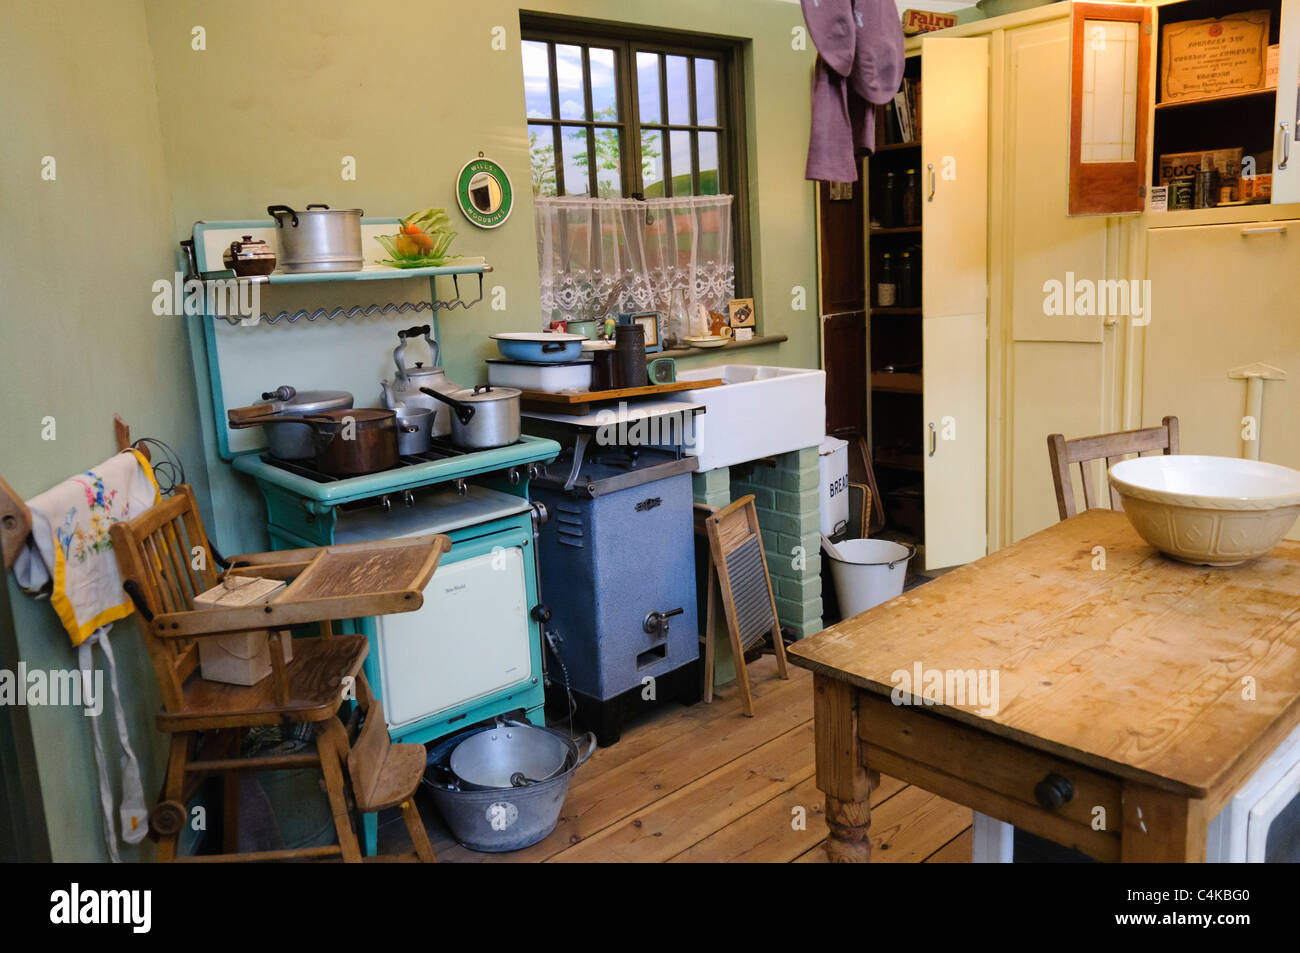 Kitchen in a traditional british home in the 1930s stock for Traditional kitchen equipments